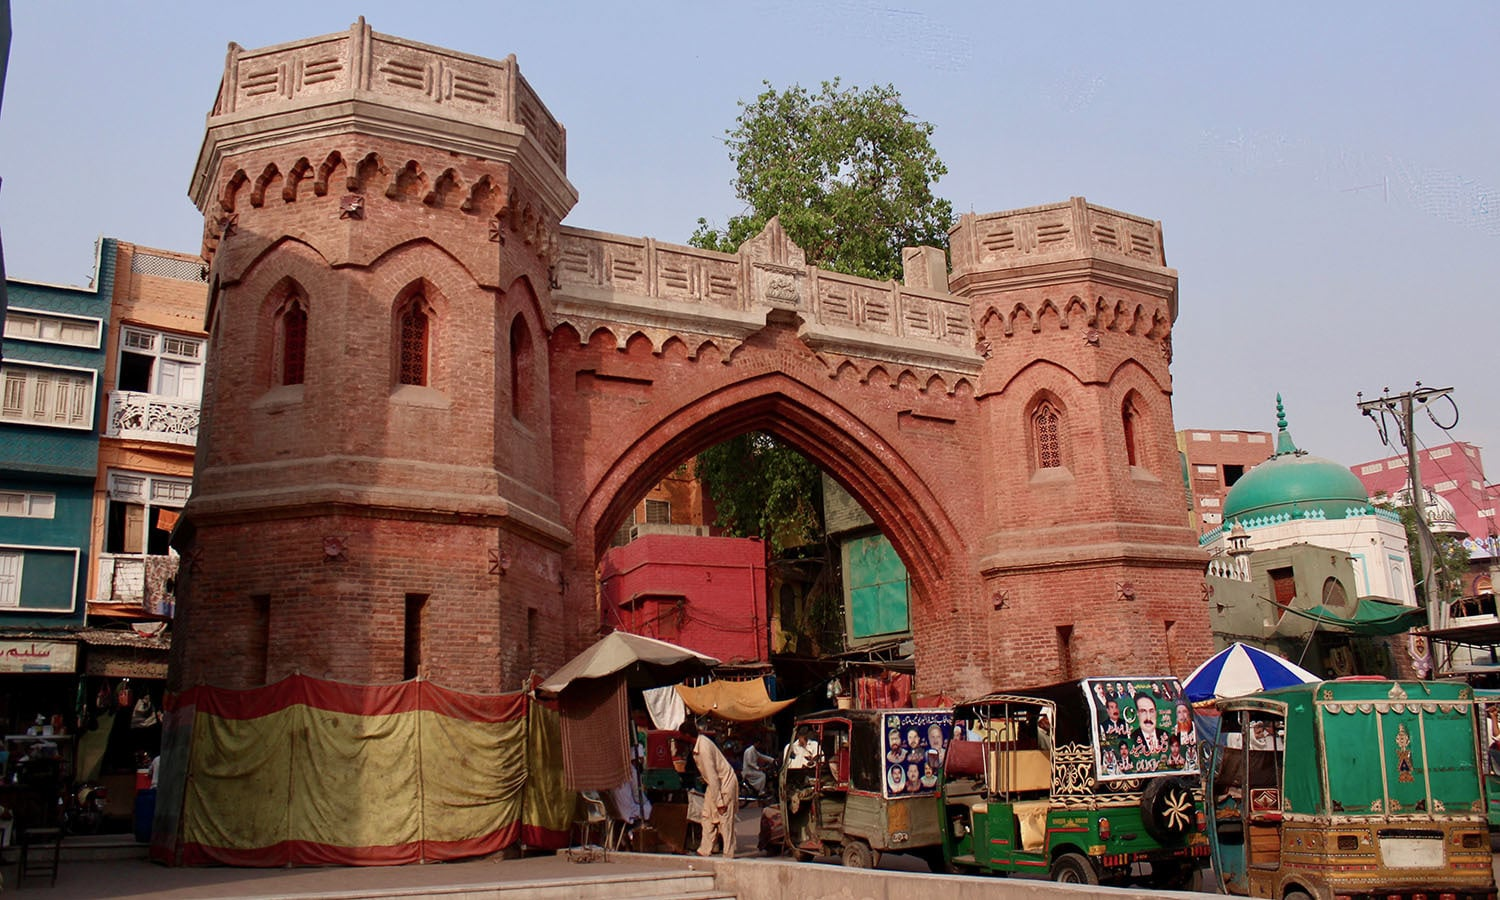 Haram Gate, Multan. —All photos by author